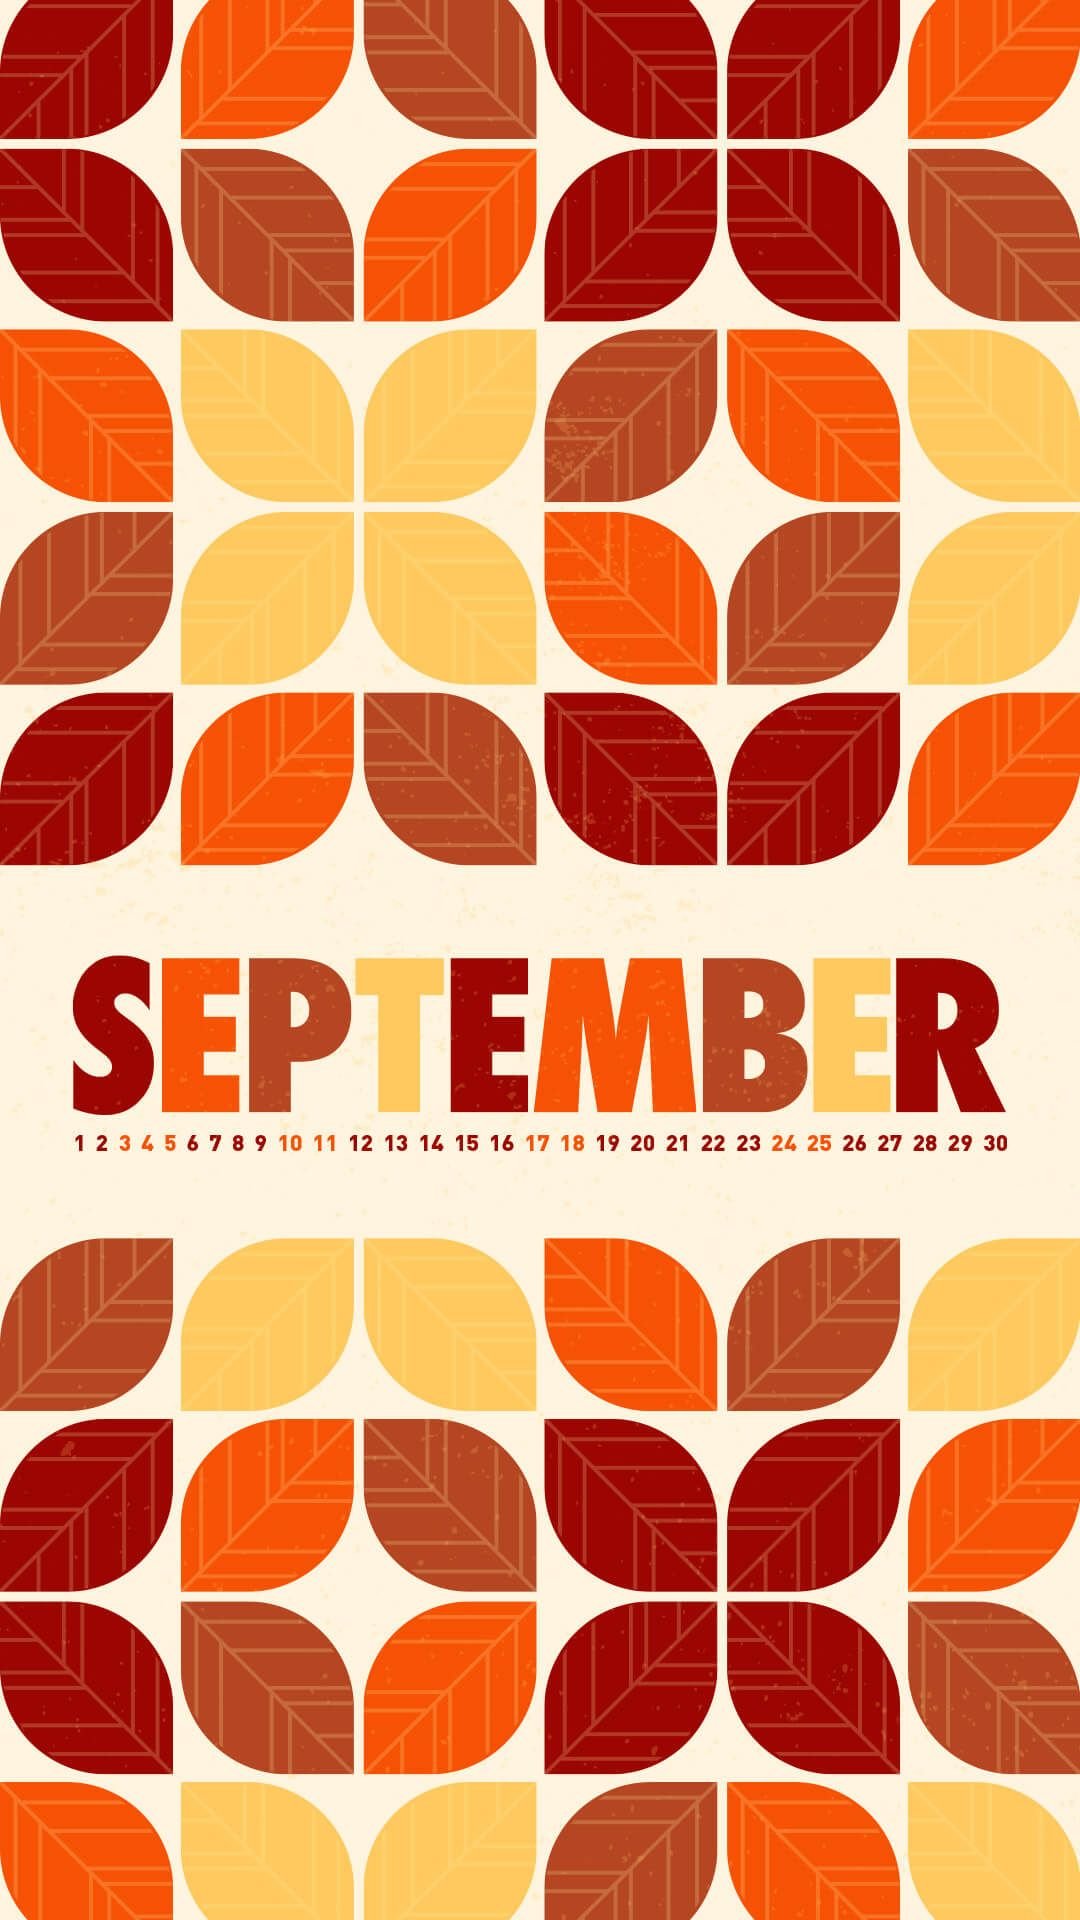 1080x1920 September 2016 Desktop Calendar Wallpaper | Paper Leaf